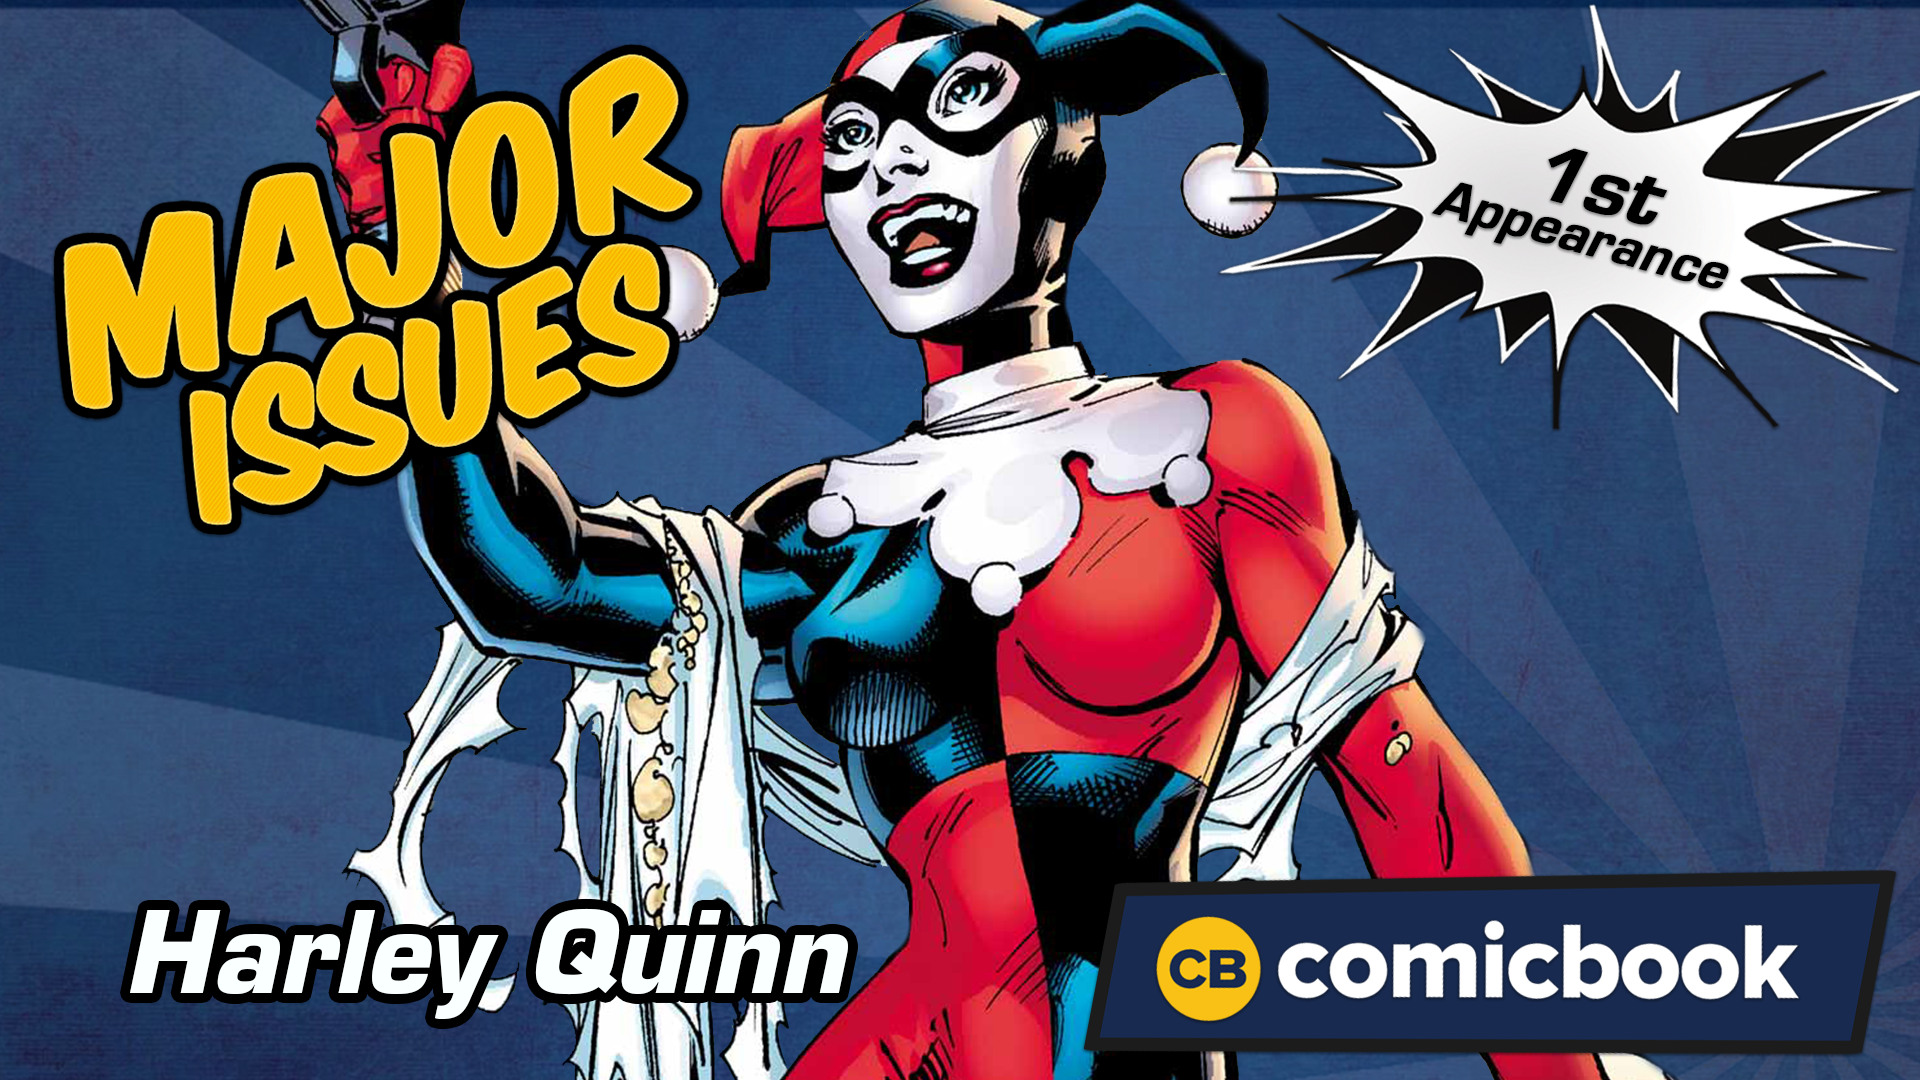 Harley Quinn's First Appearance - Major Issues screen capture